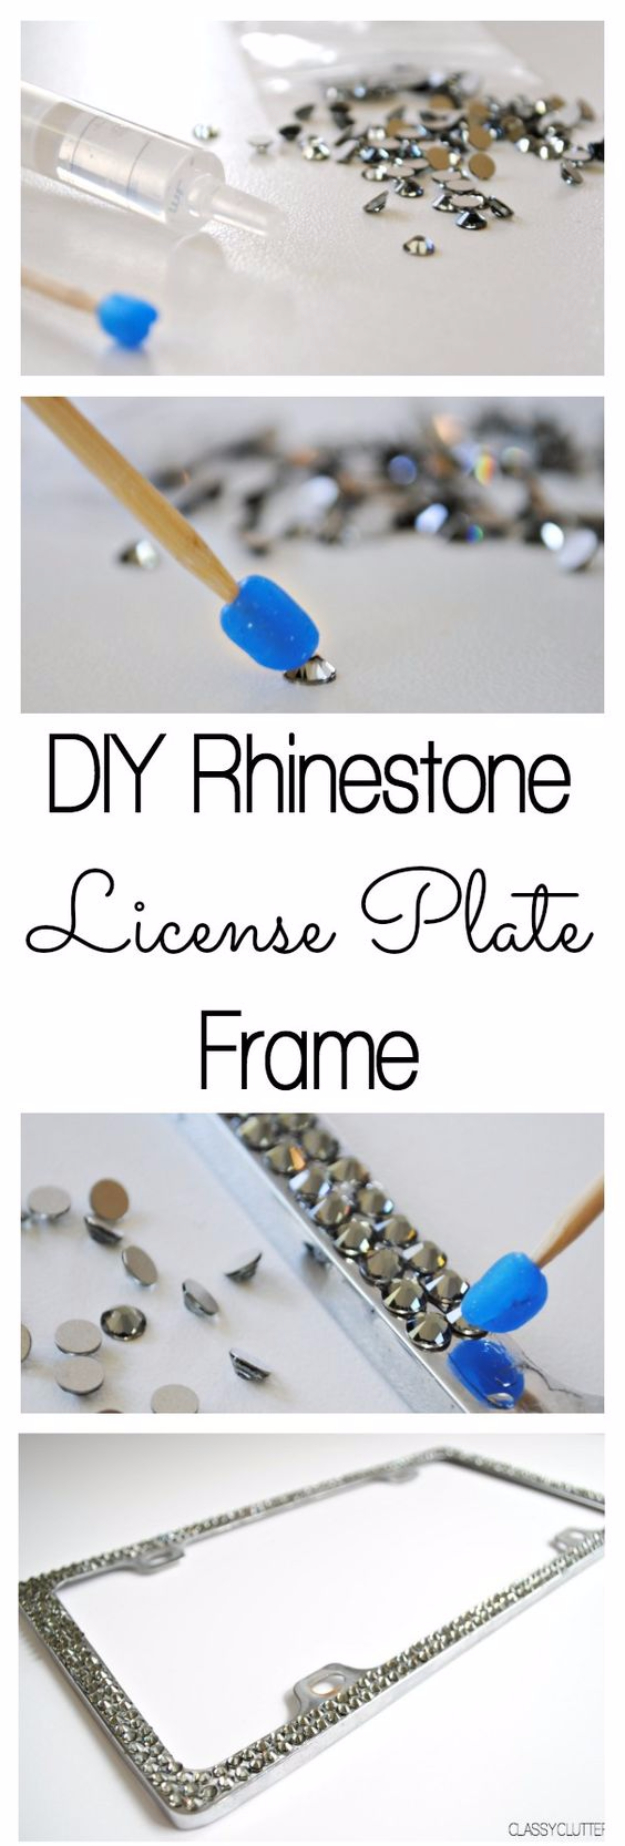 DIY Car Accessories and Ideas for Cars - DIY Rhinestone License Plate Frame - Interior and Exterior, Seats, Mirror, Seat Covers, Storage, Carpet and Window Cleaners and Products - Decor, Keys and Iphone and Tablet Holders - DIY Projects and Crafts for Women and Men